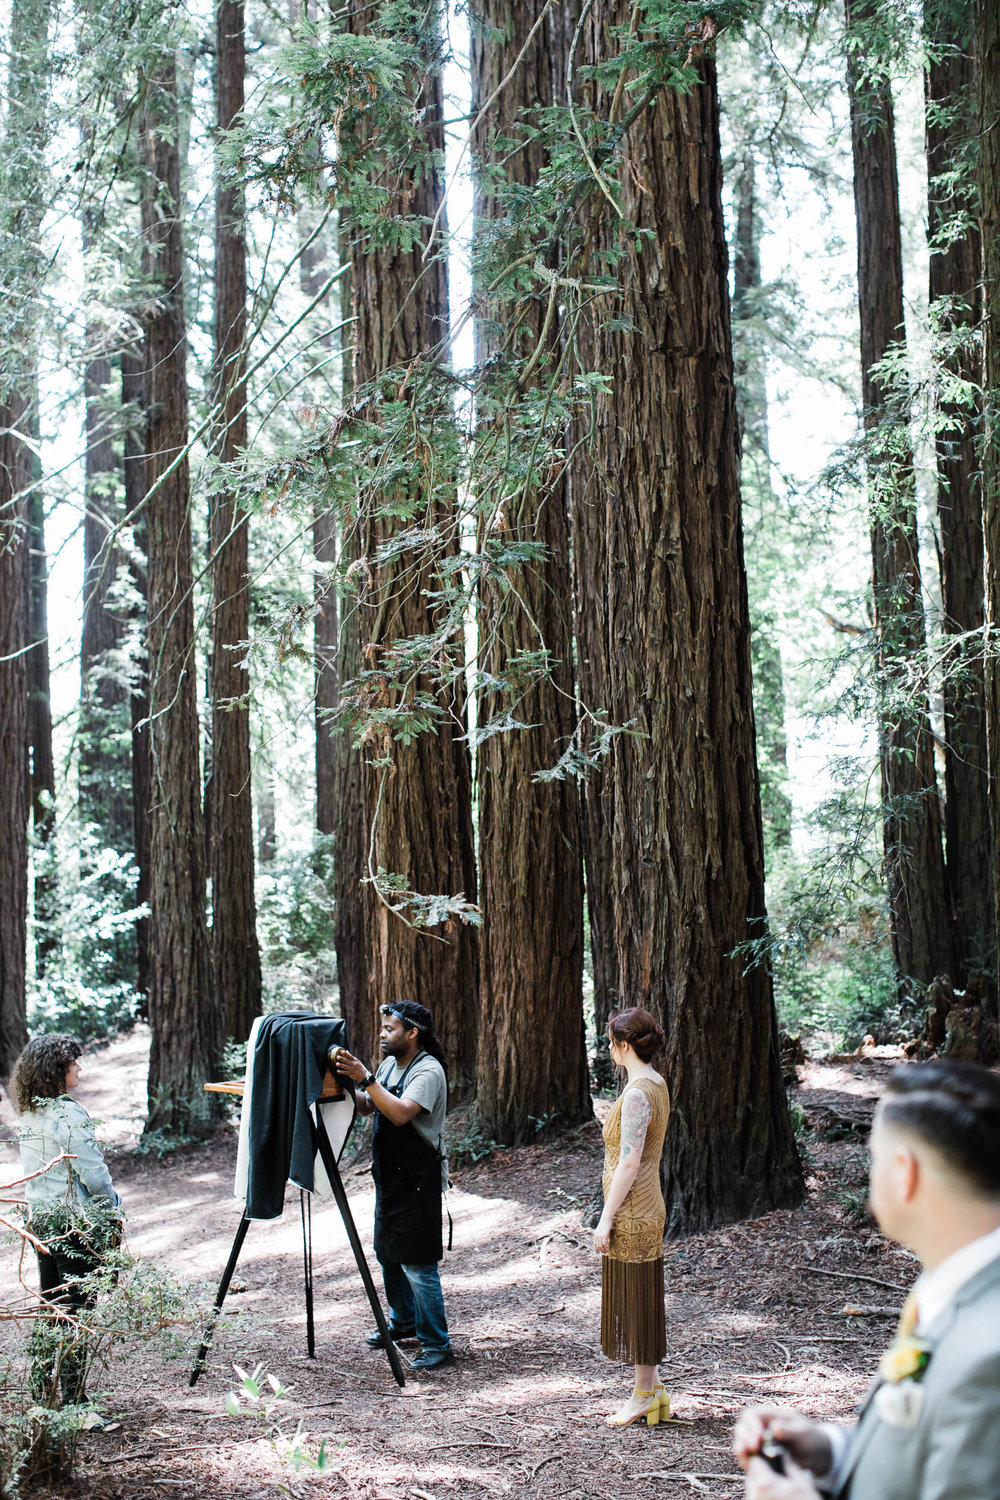 050418_J+S_Redwoods Elopement_Buena Lane Photography_0352.jpg